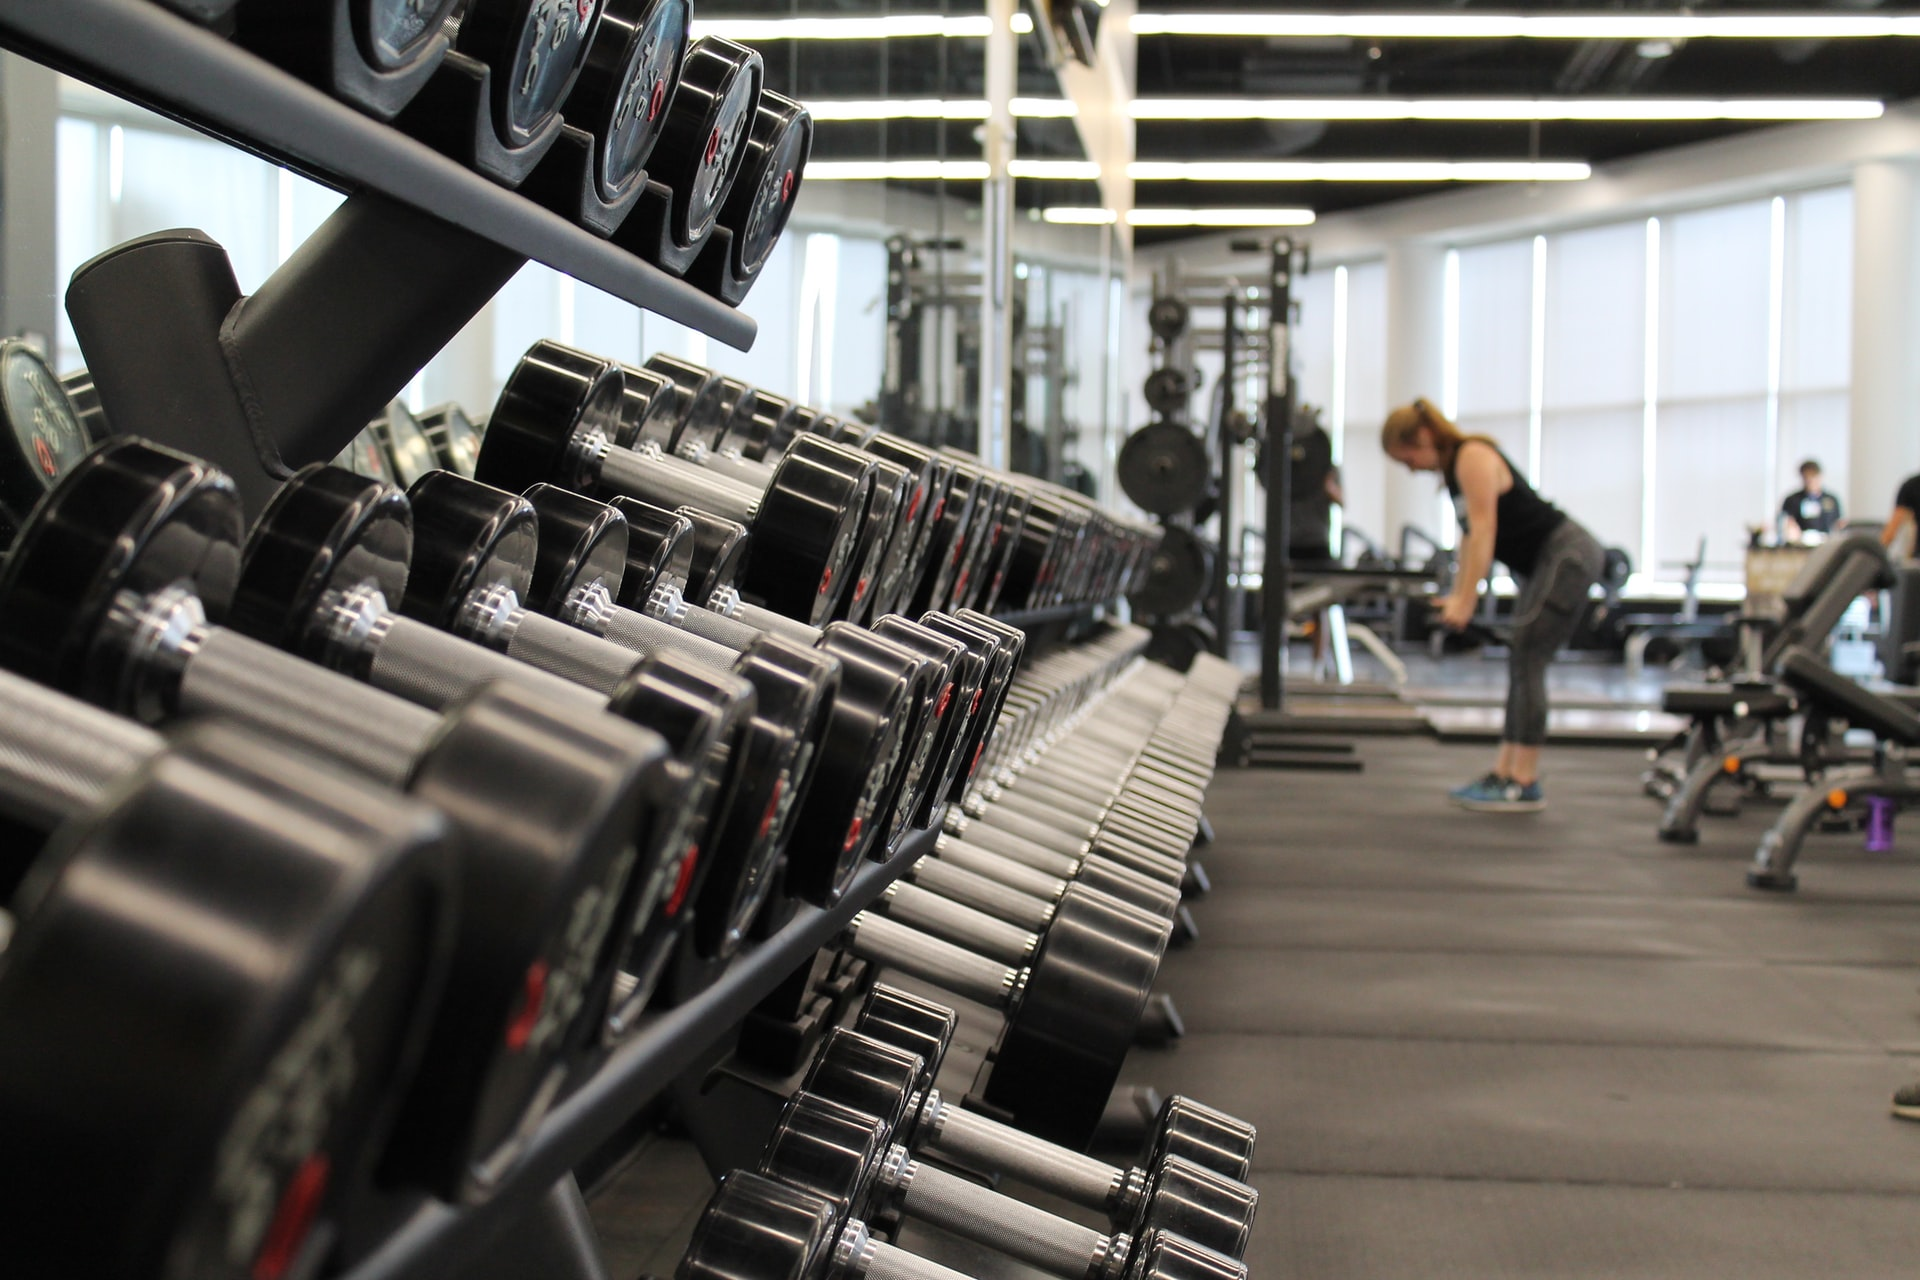 Picture of weights in the gym